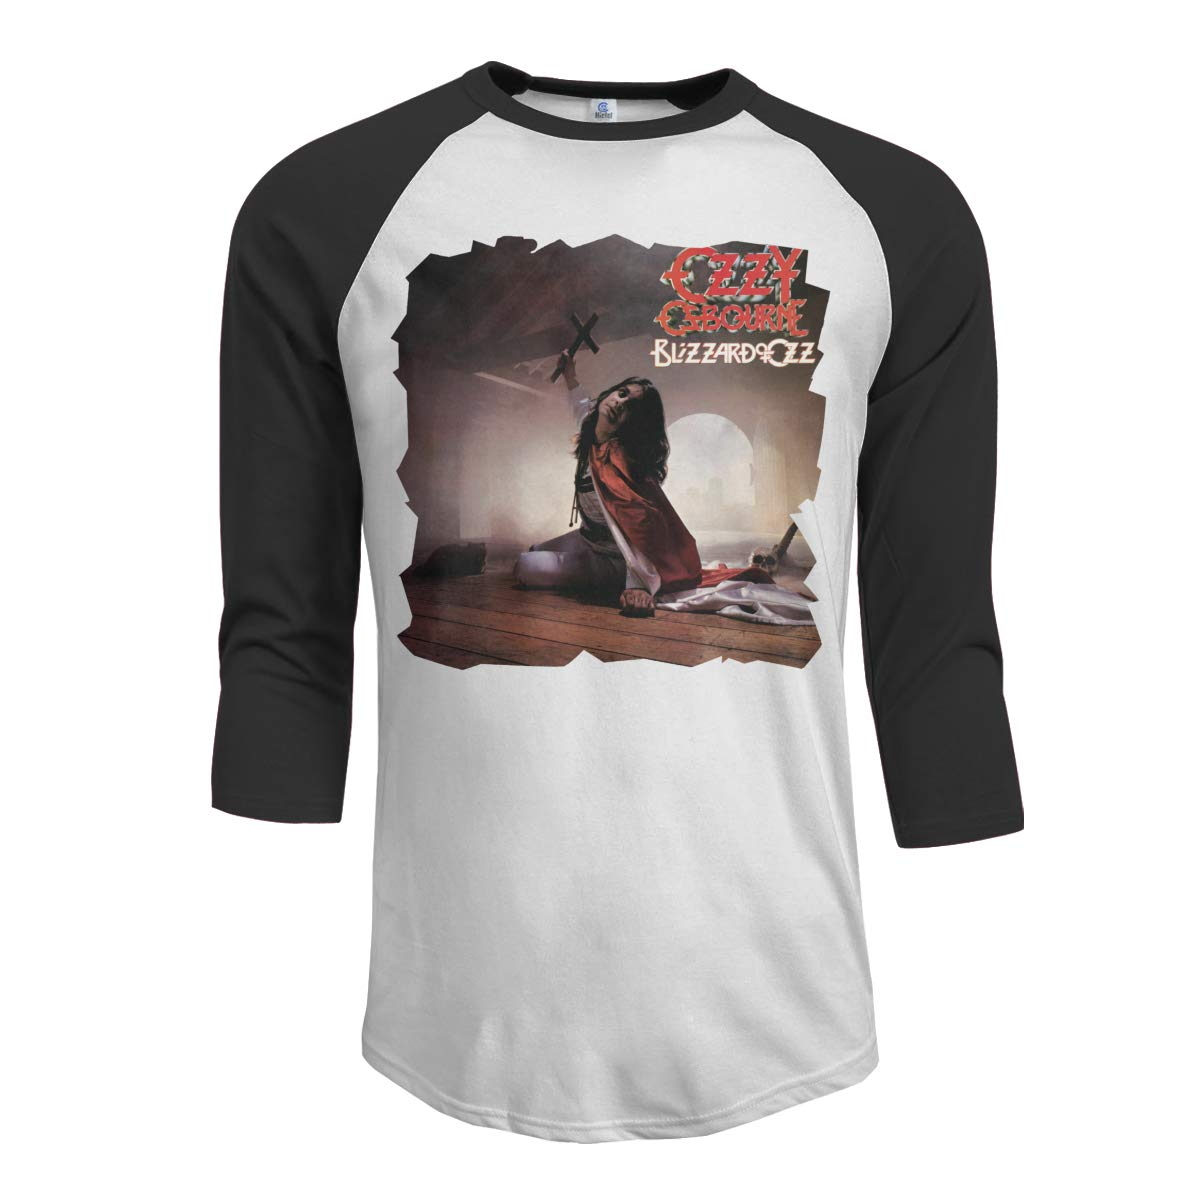 T-Shirt for Men Blizzard of Ozz Expanded Edition Ozzy Osbourne Classic 3//4 Sleeve Raglan Tee